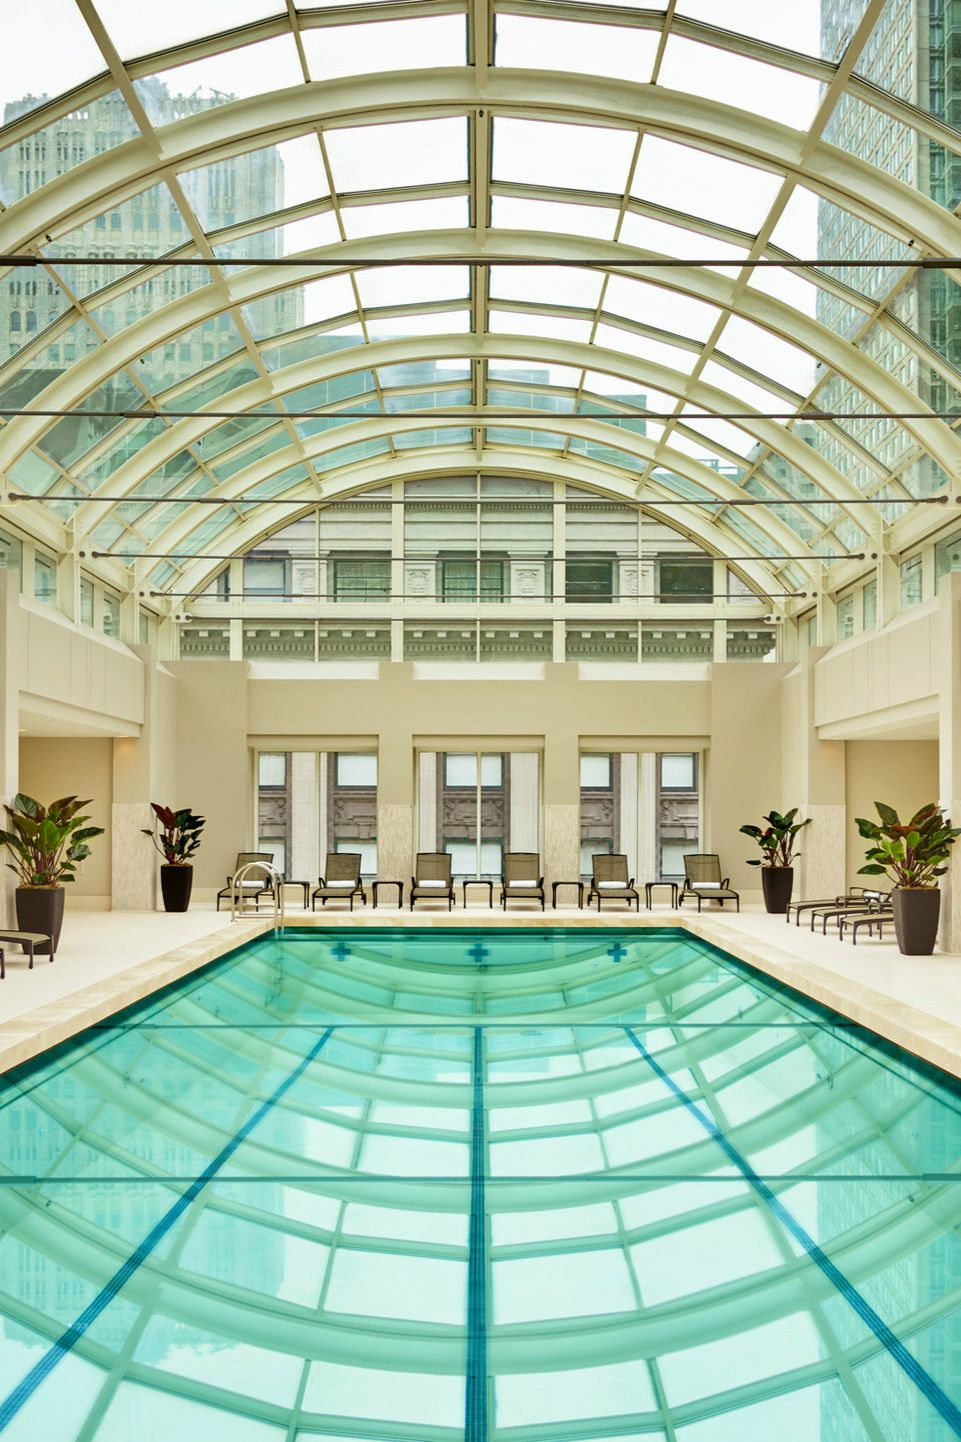 Palace Hotel San Francisco Luxurious Hotels In Usa Book Now